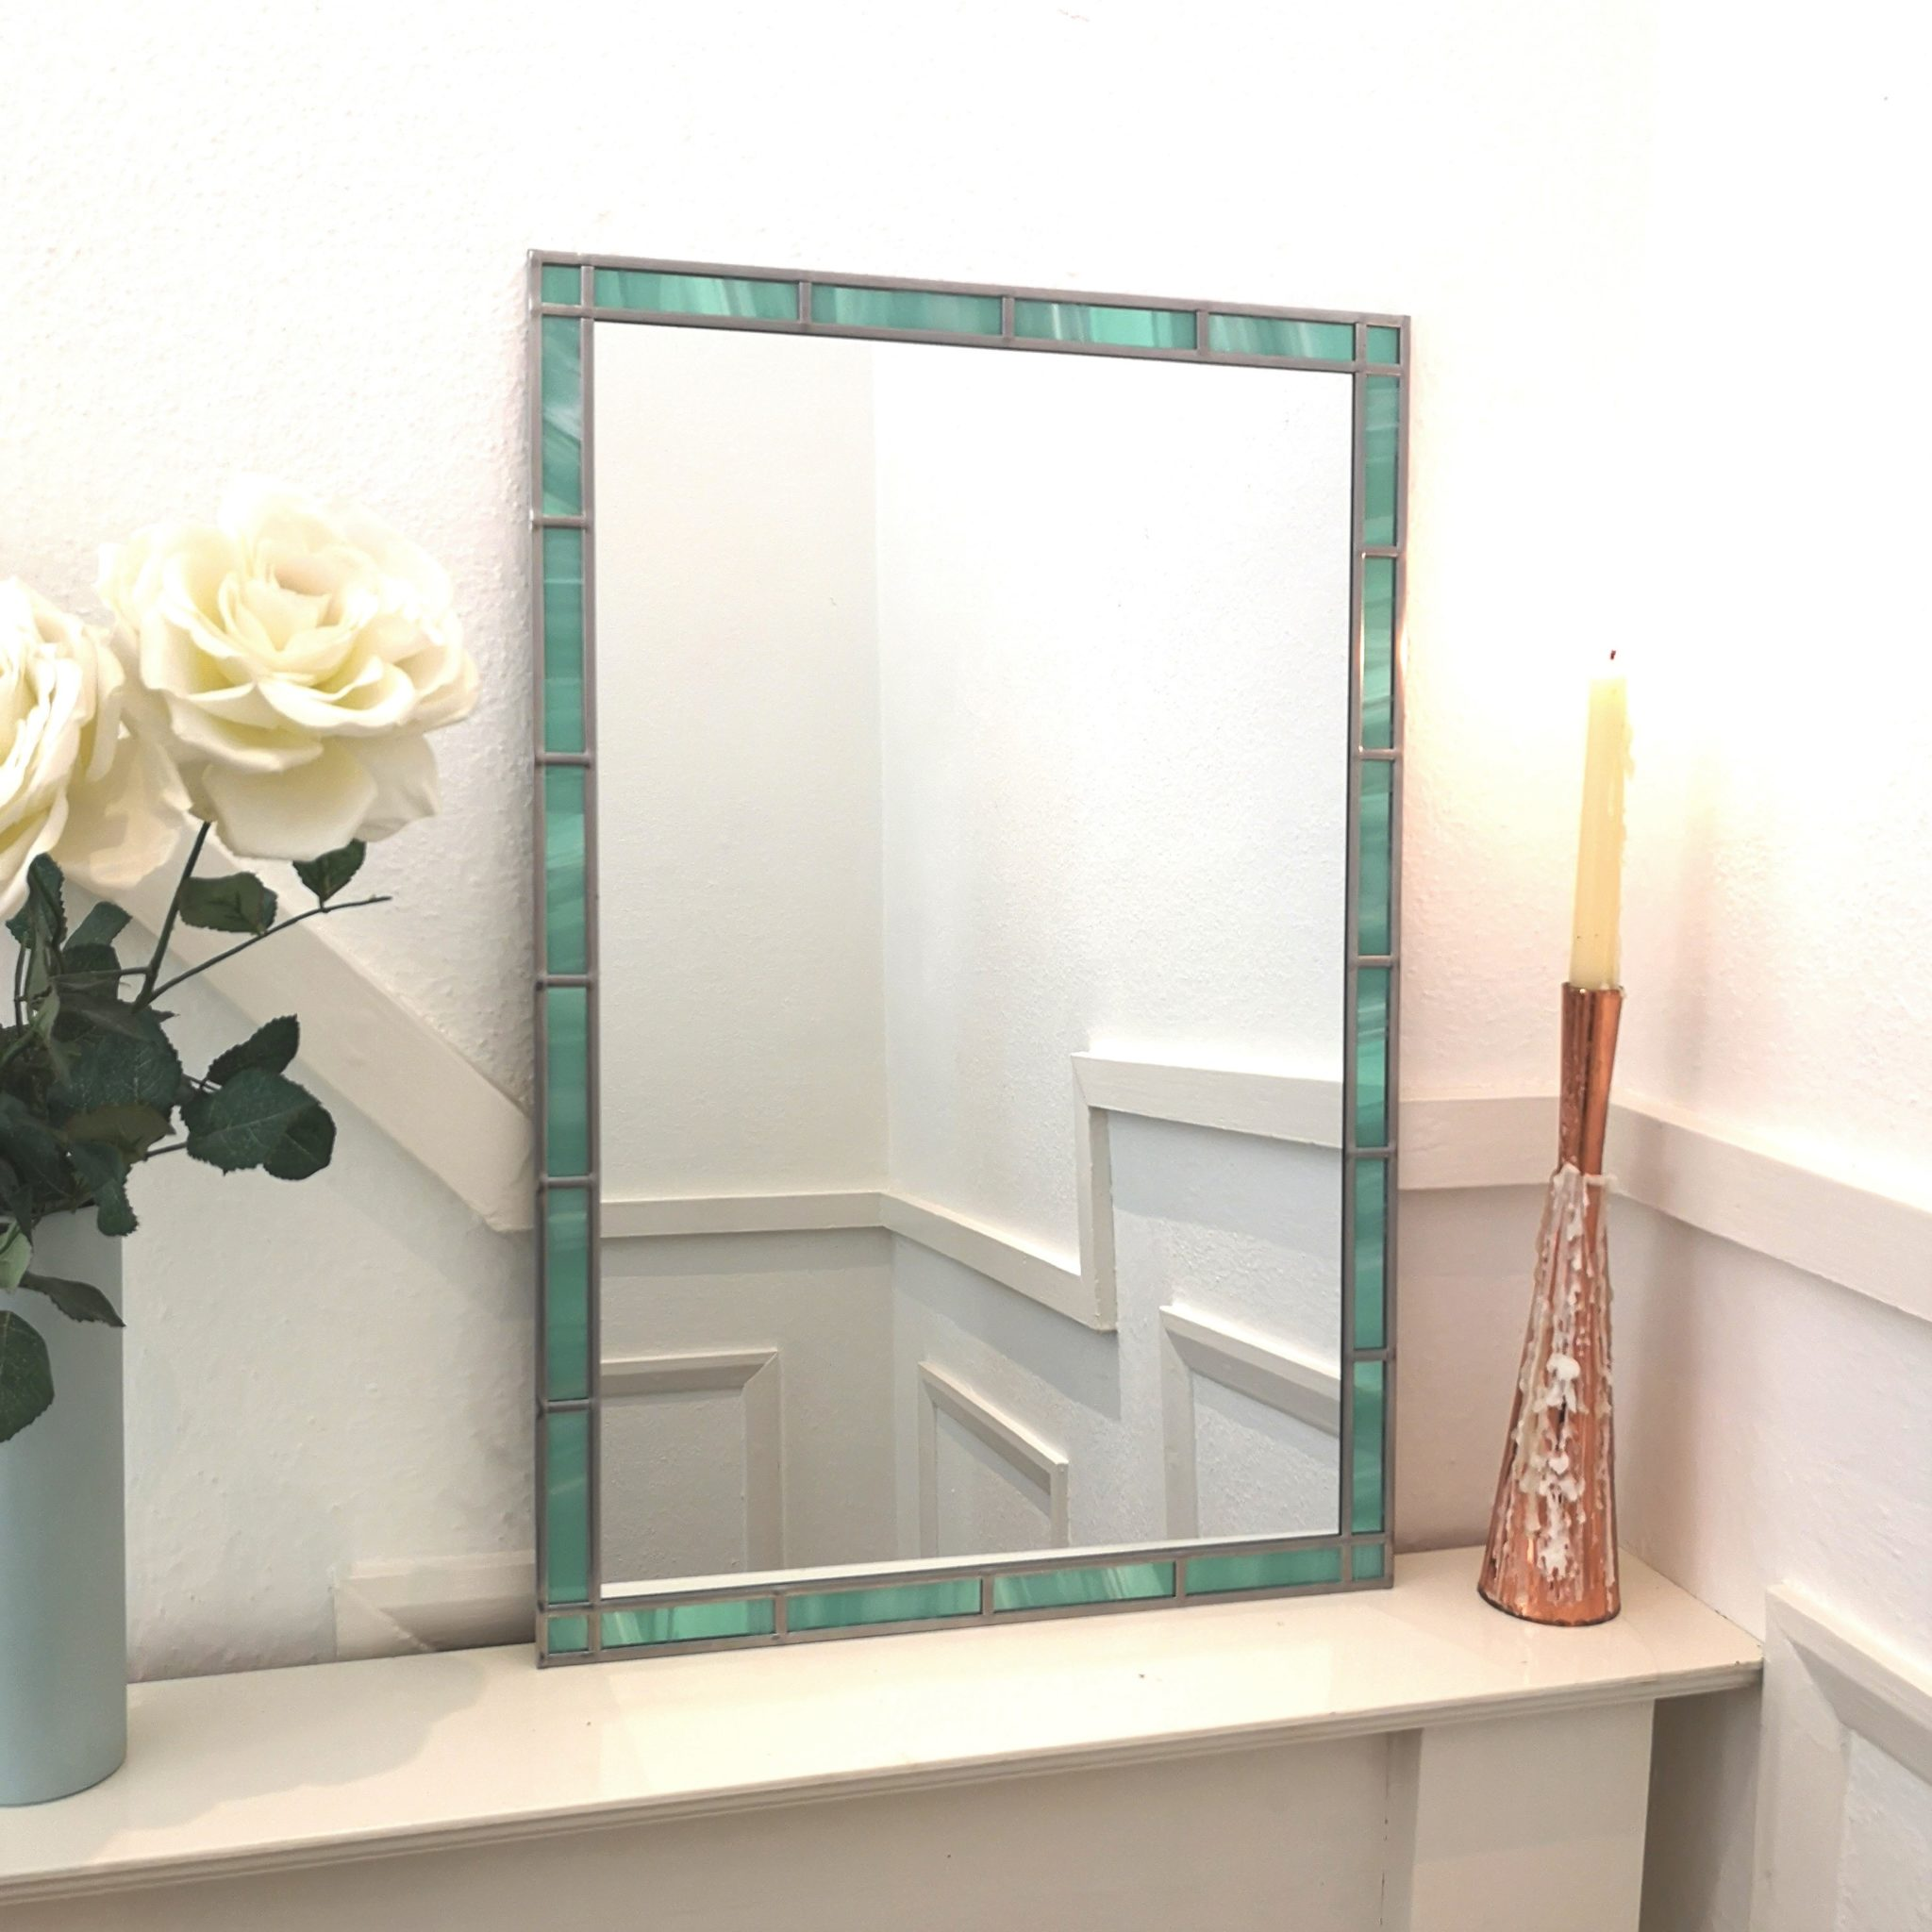 Stained Glass Border Mirror 45x61cm 18inx2ft Lawson Glassworks